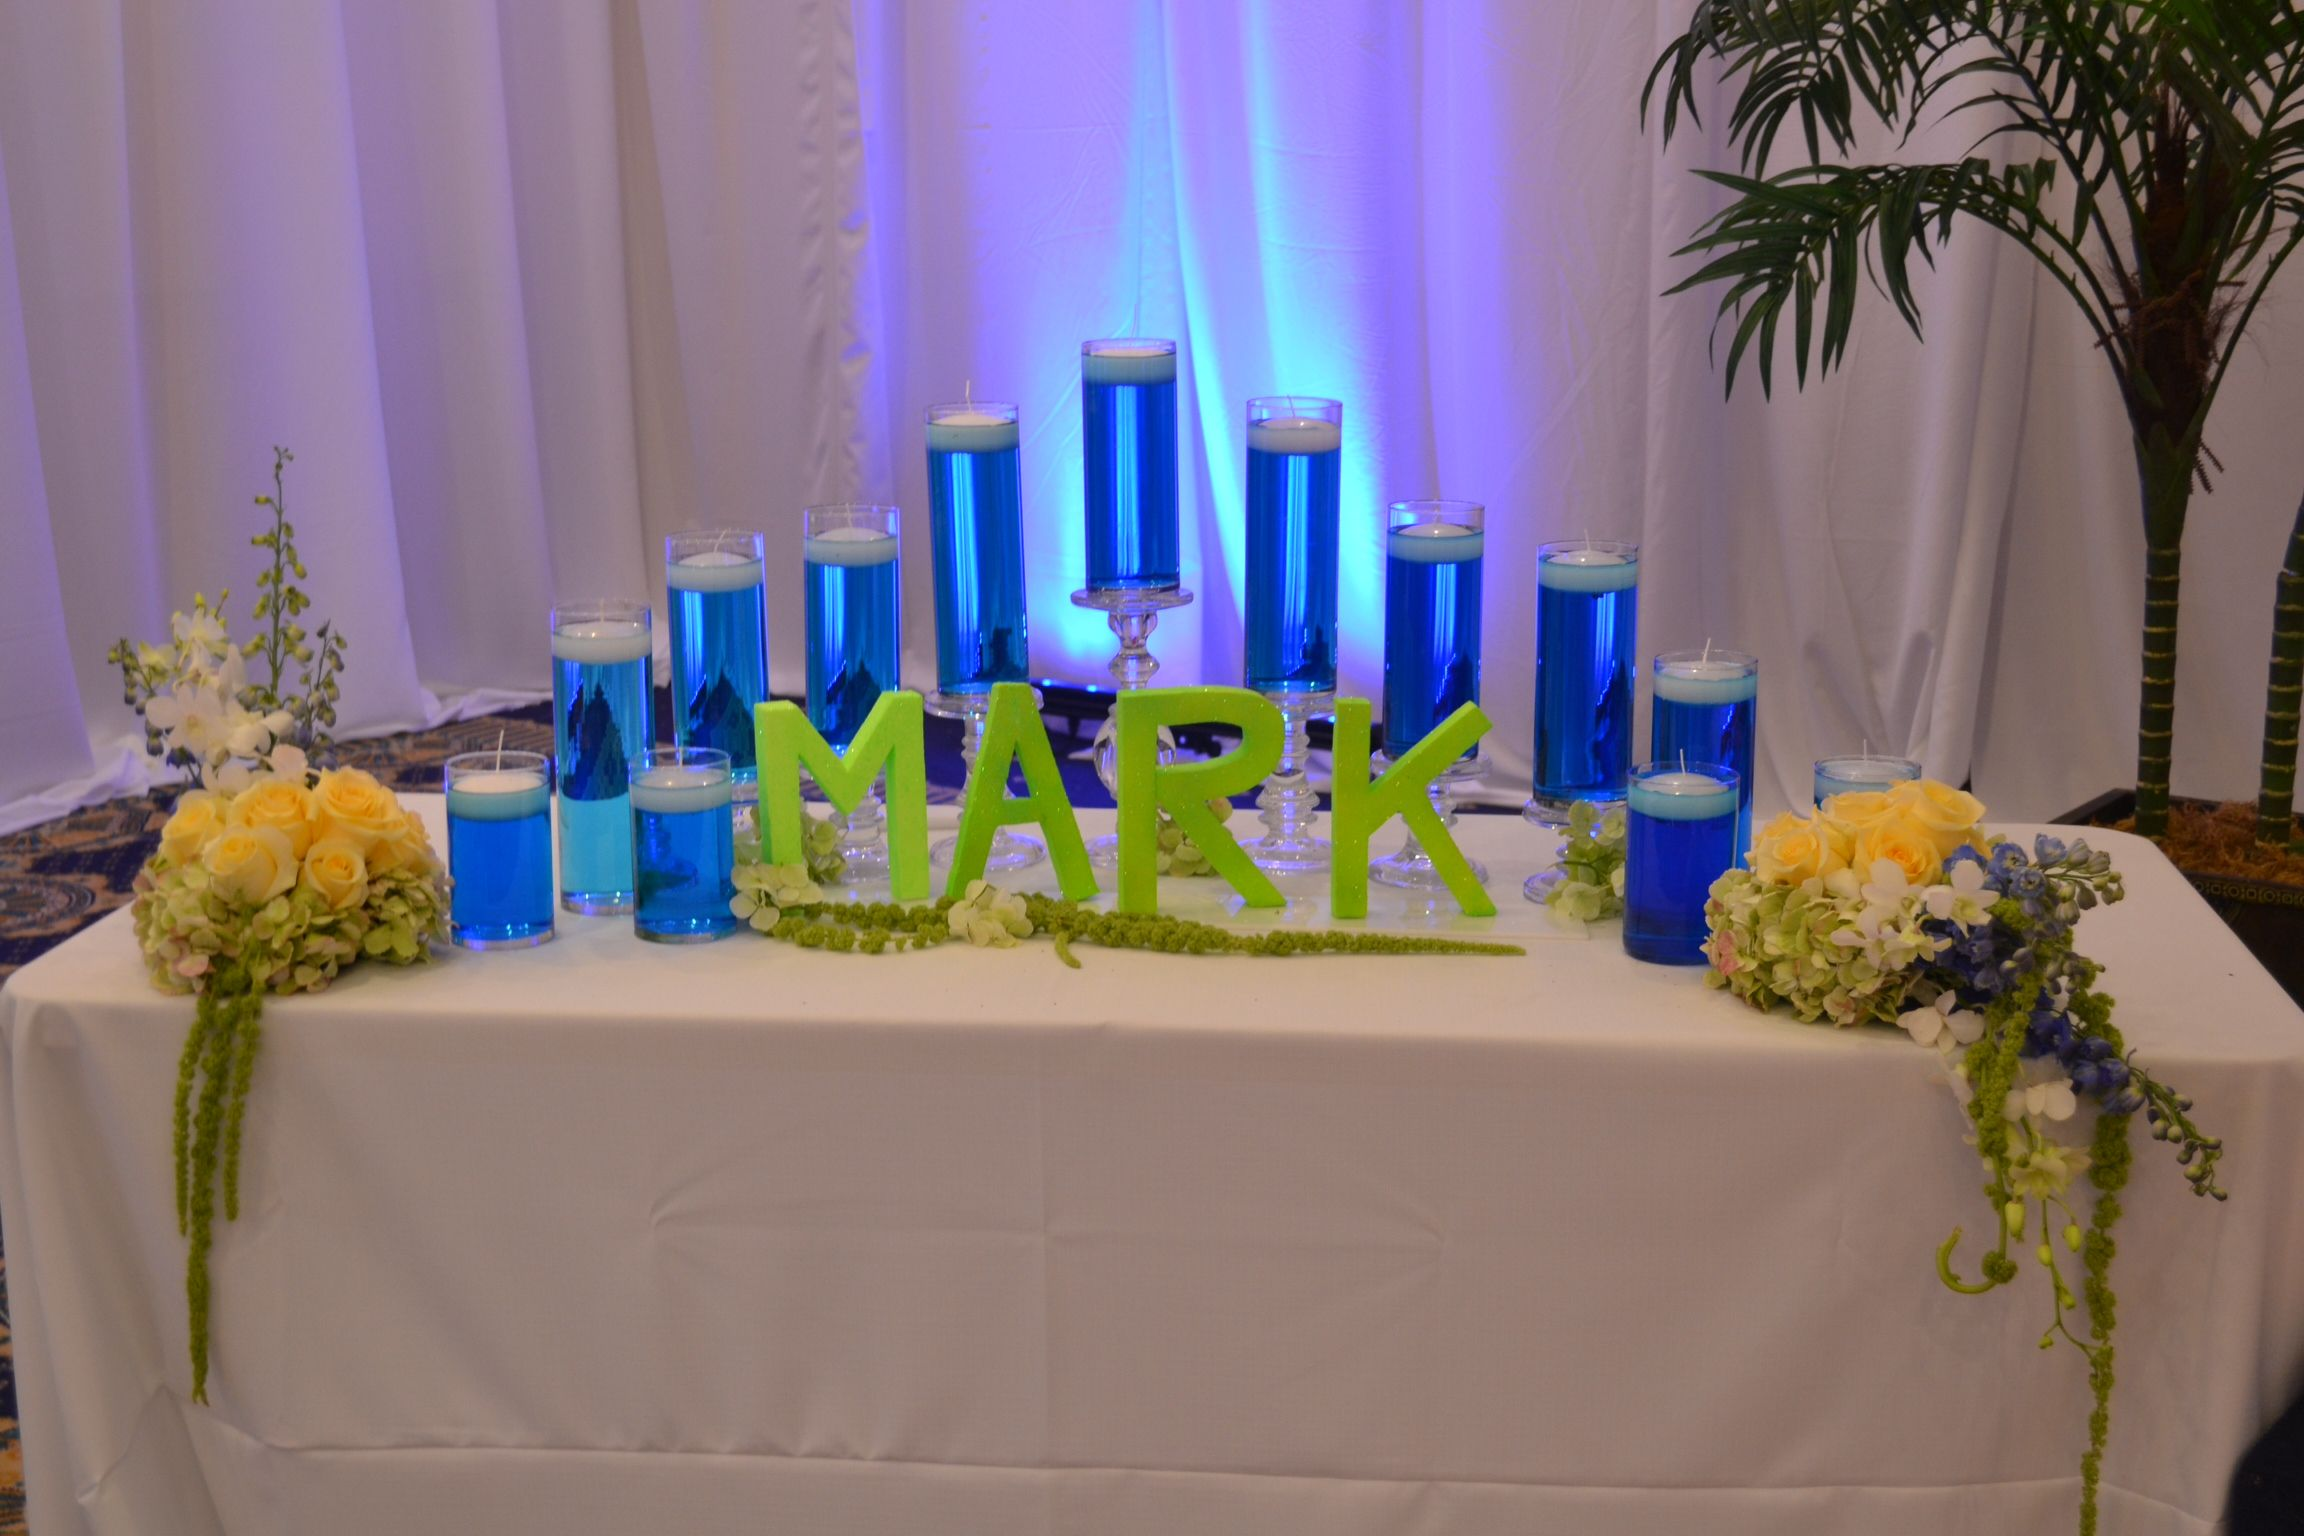 Bar mitzvah candle lighting display party perfect boca raton fl 1 bar mitzvah candle lighting display party perfect boca raton fl 1561 aloadofball Image collections